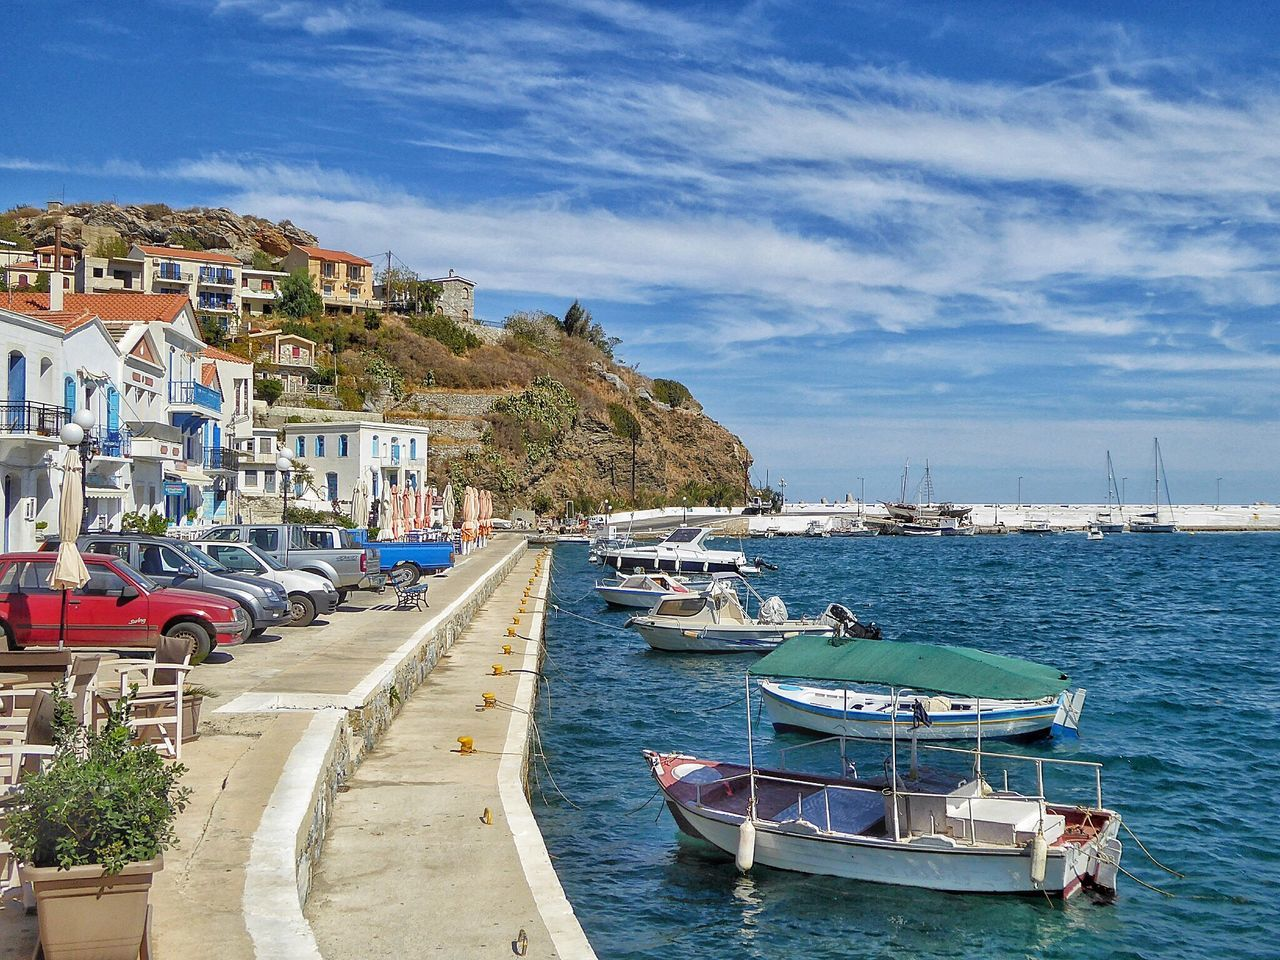 Evdilos Evdilos Ikarias Greece Village Ikaria Ikaria Greece Dodecanese Greece GREECE ♥♥ Landscape Landscape_Collection Landscape_photography Seascape Seascape Photography